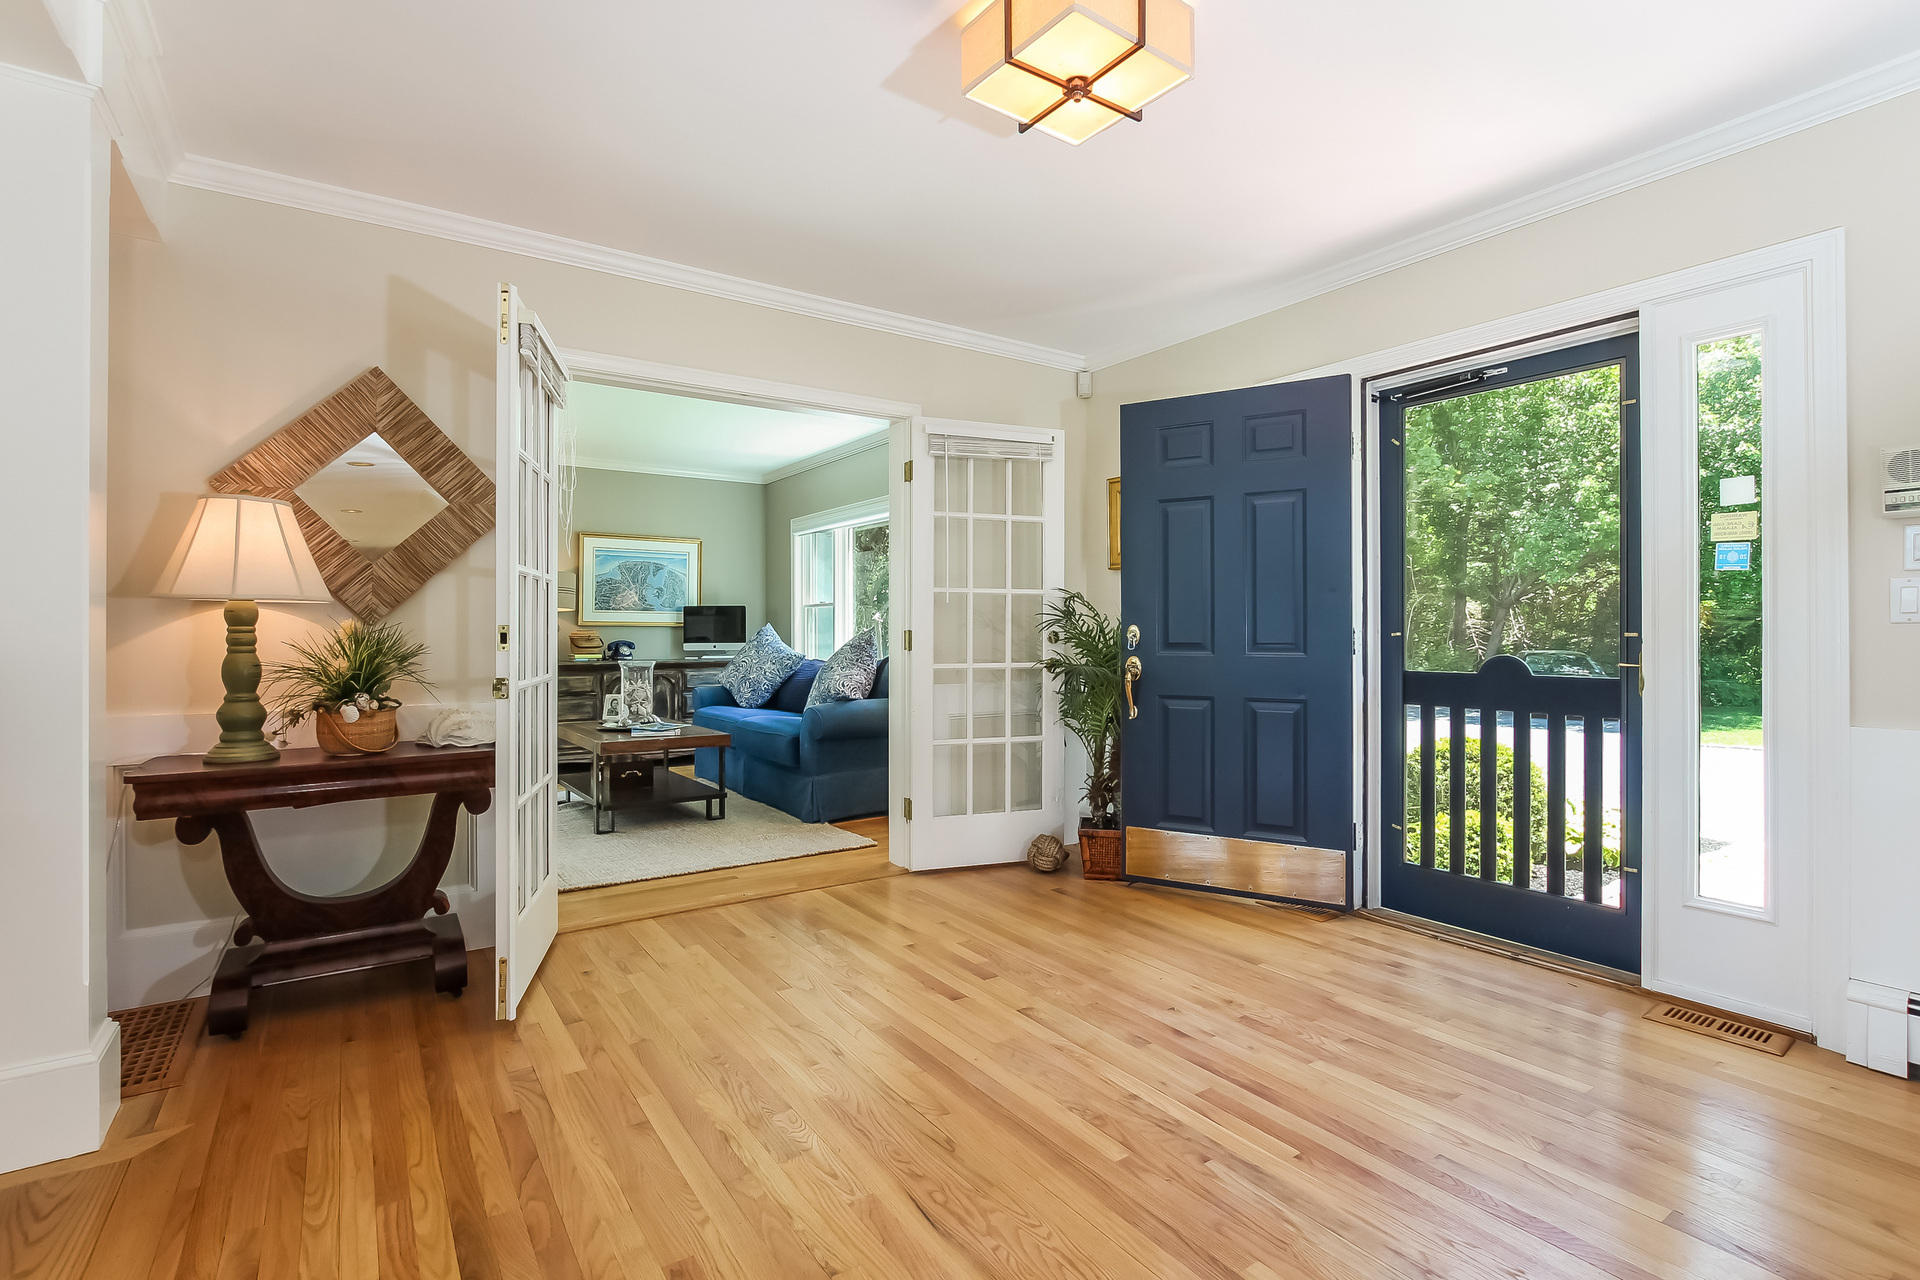 629 & 656 Sea View Avenue, Osterville, Massachusetts, 02655, 5 Bedrooms Bedrooms, ,6 BathroomsBathrooms,Residential,For Sale,629 & 656 Sea View Avenue,21804490